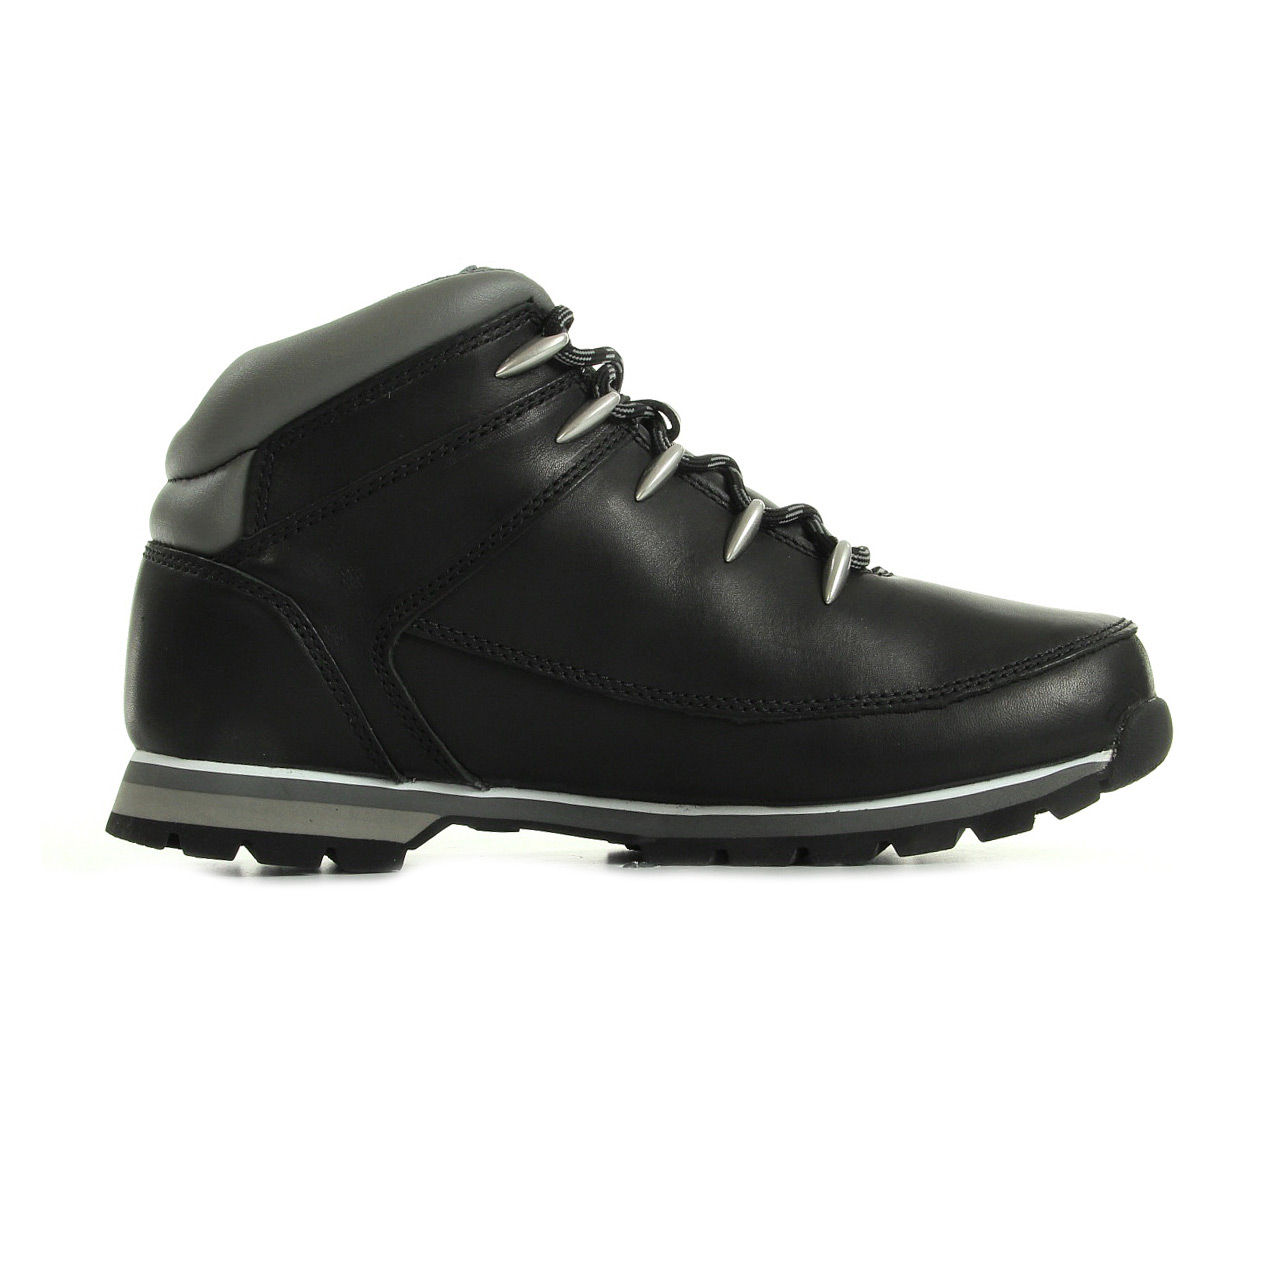 89432054c1a Chaussures Boots Timberland homme Euro Sprint taille Noir Noire Cuir ...